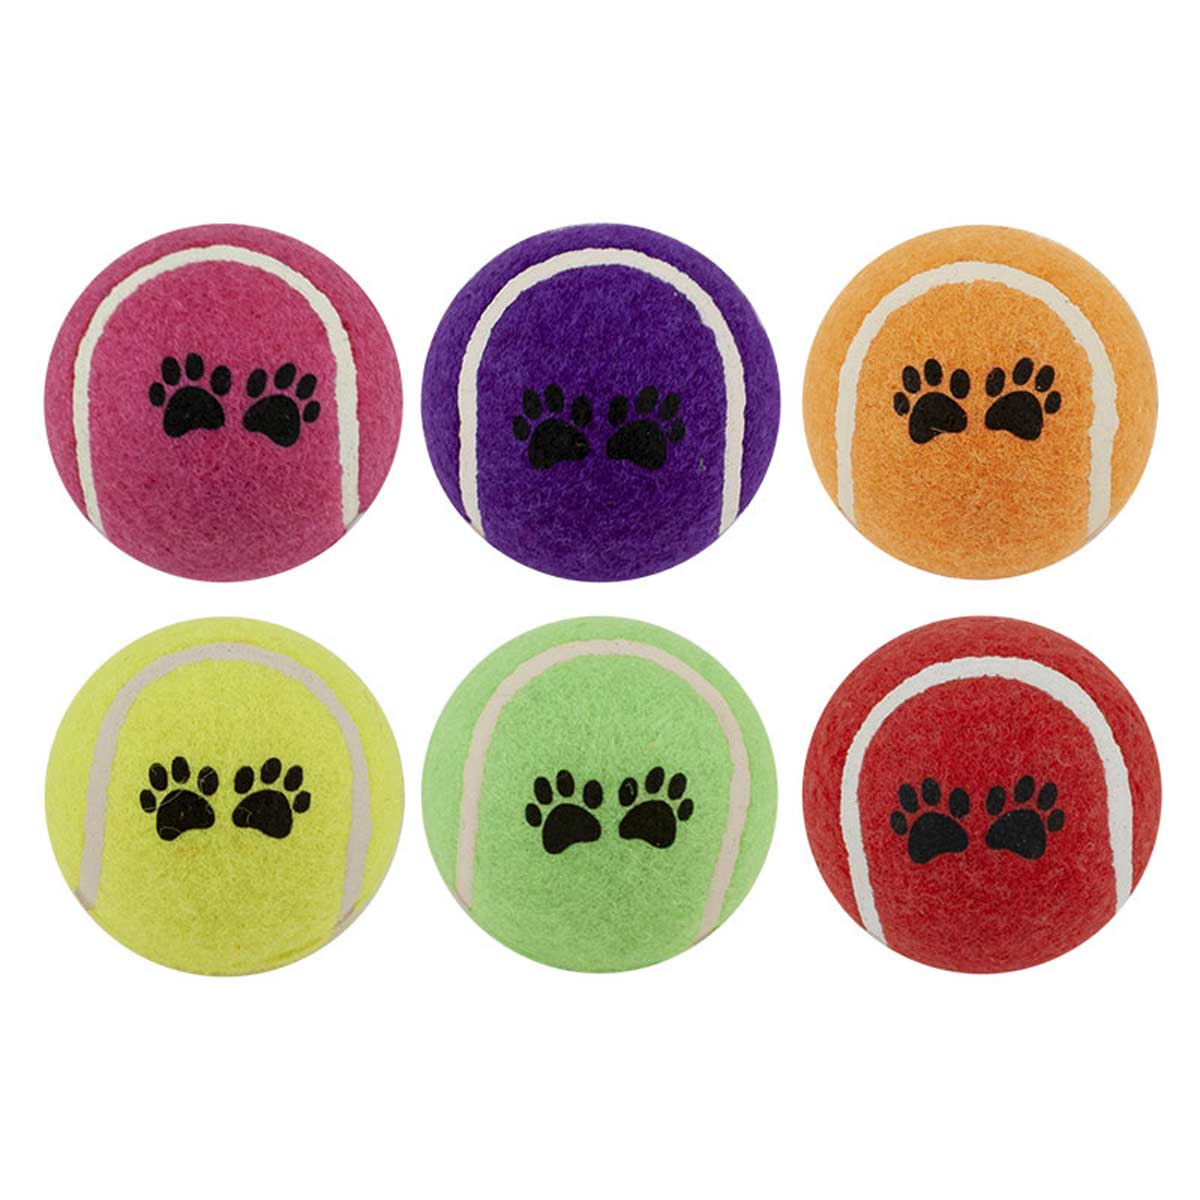 Tennis Ball for Dogs - 2.5 inch Assorted Pastel